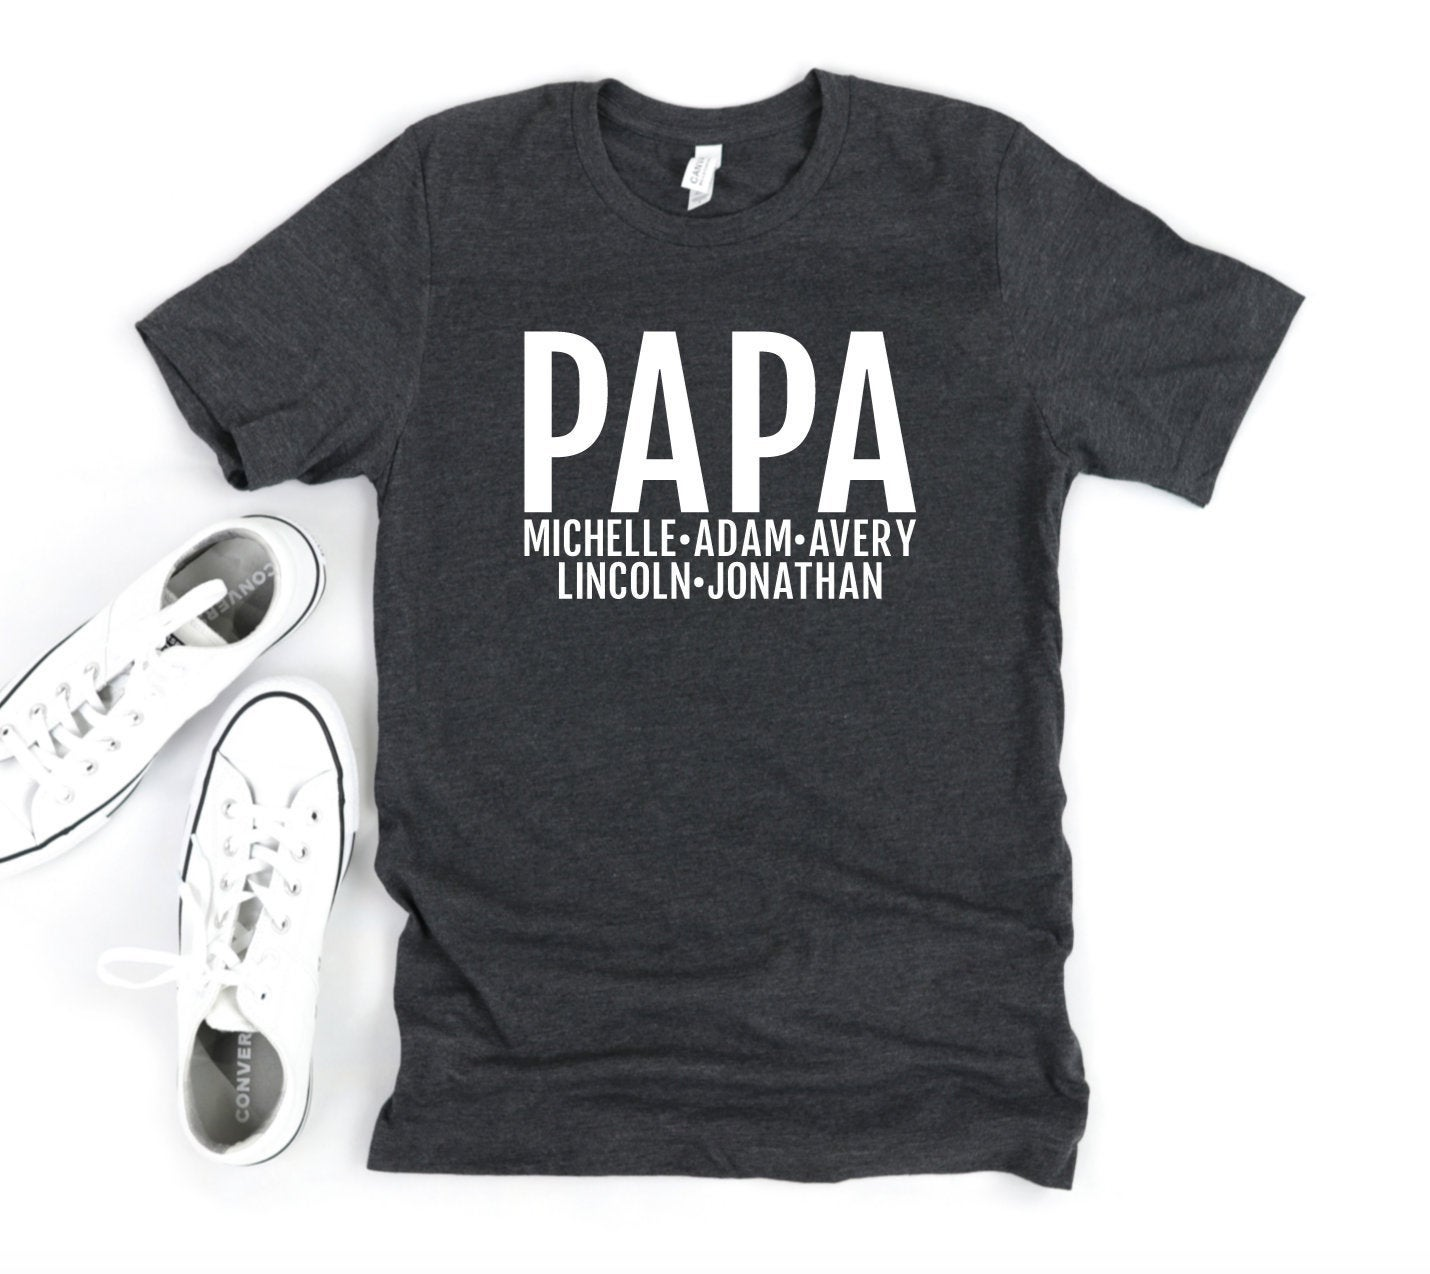 Personalized Papa T-shirt With Grandkids Names - Papa Shirt - Gift For Papa - Father's Day Gift Idea - Papa T-shirt